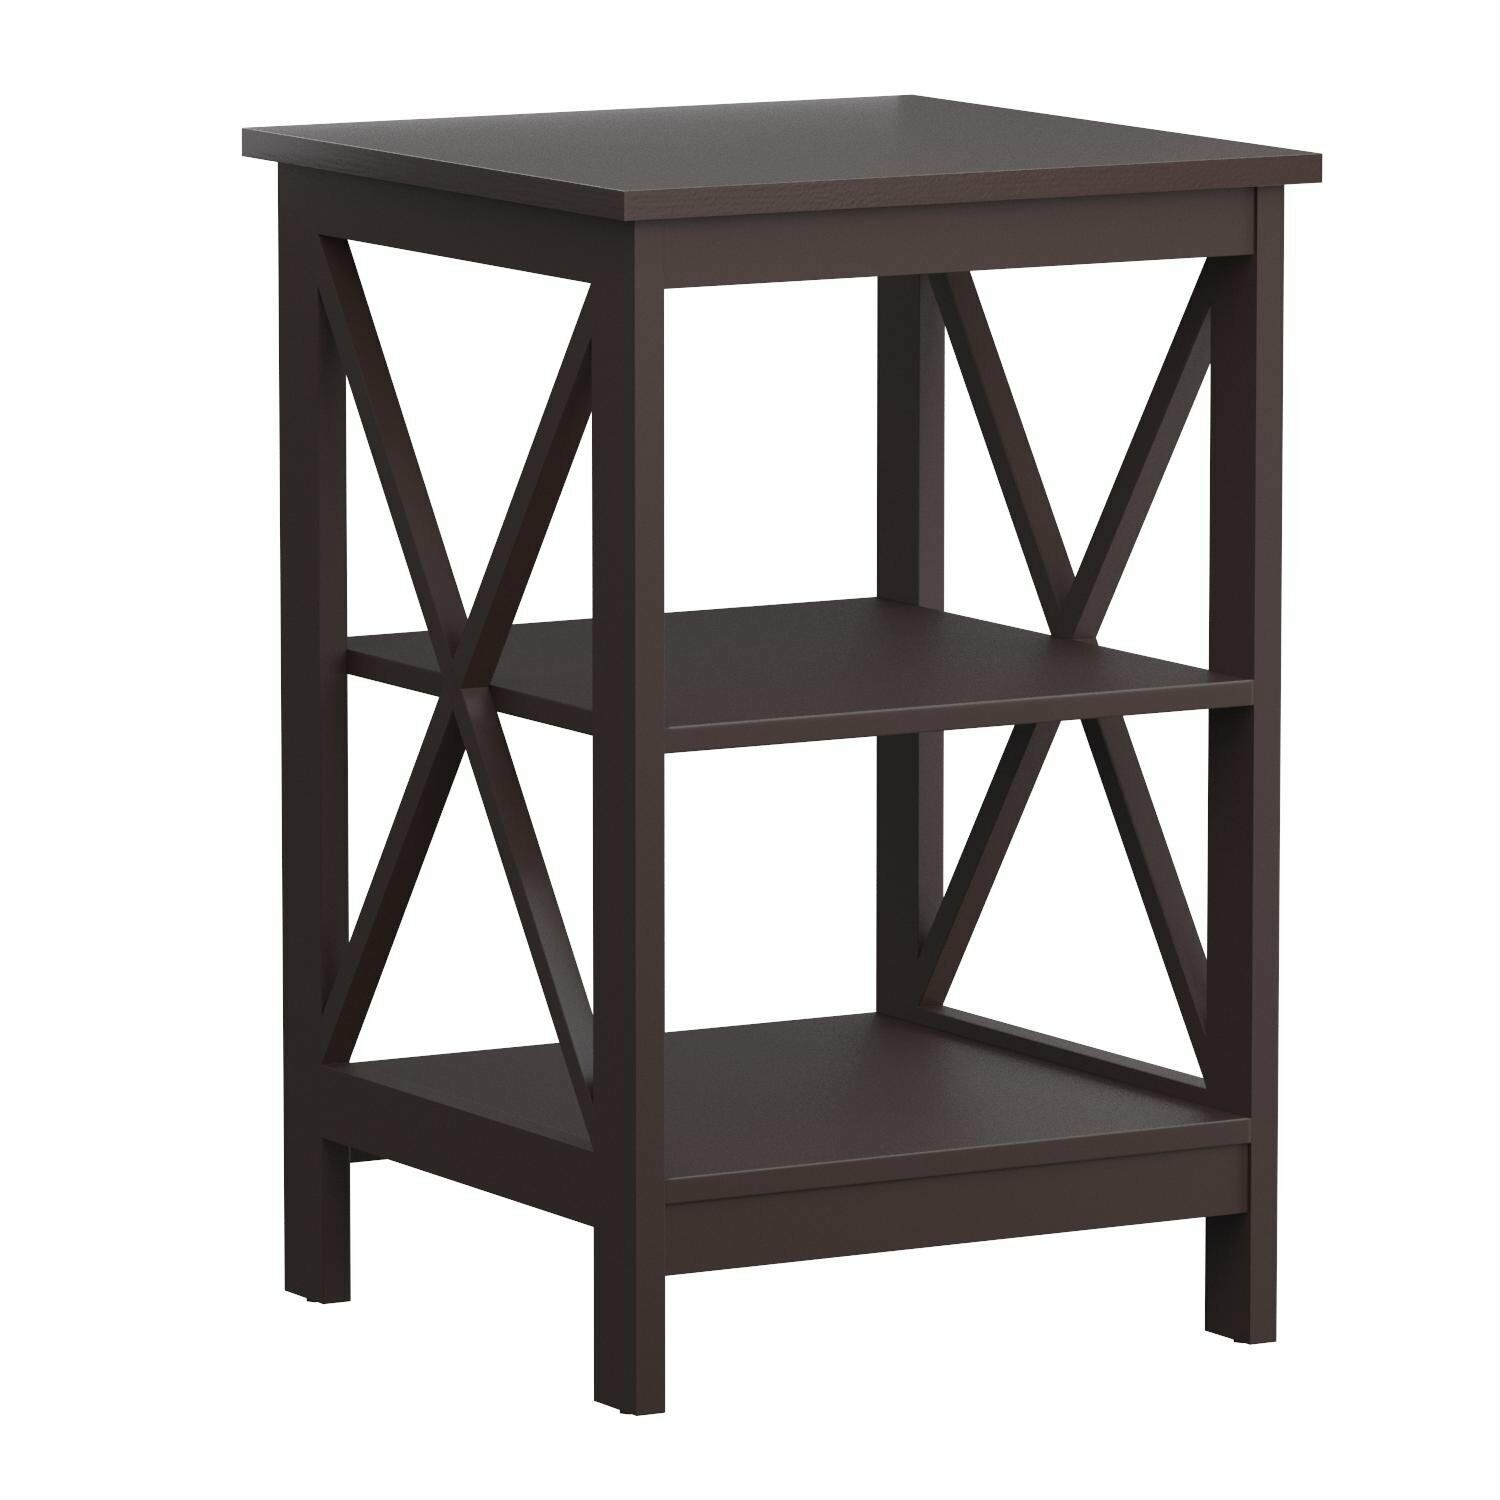 convenience concepts oxford end table espresso for stock west elm throws bedroom side decor galvanized steel pipe perfect coffee interesting console tables marble and iron small